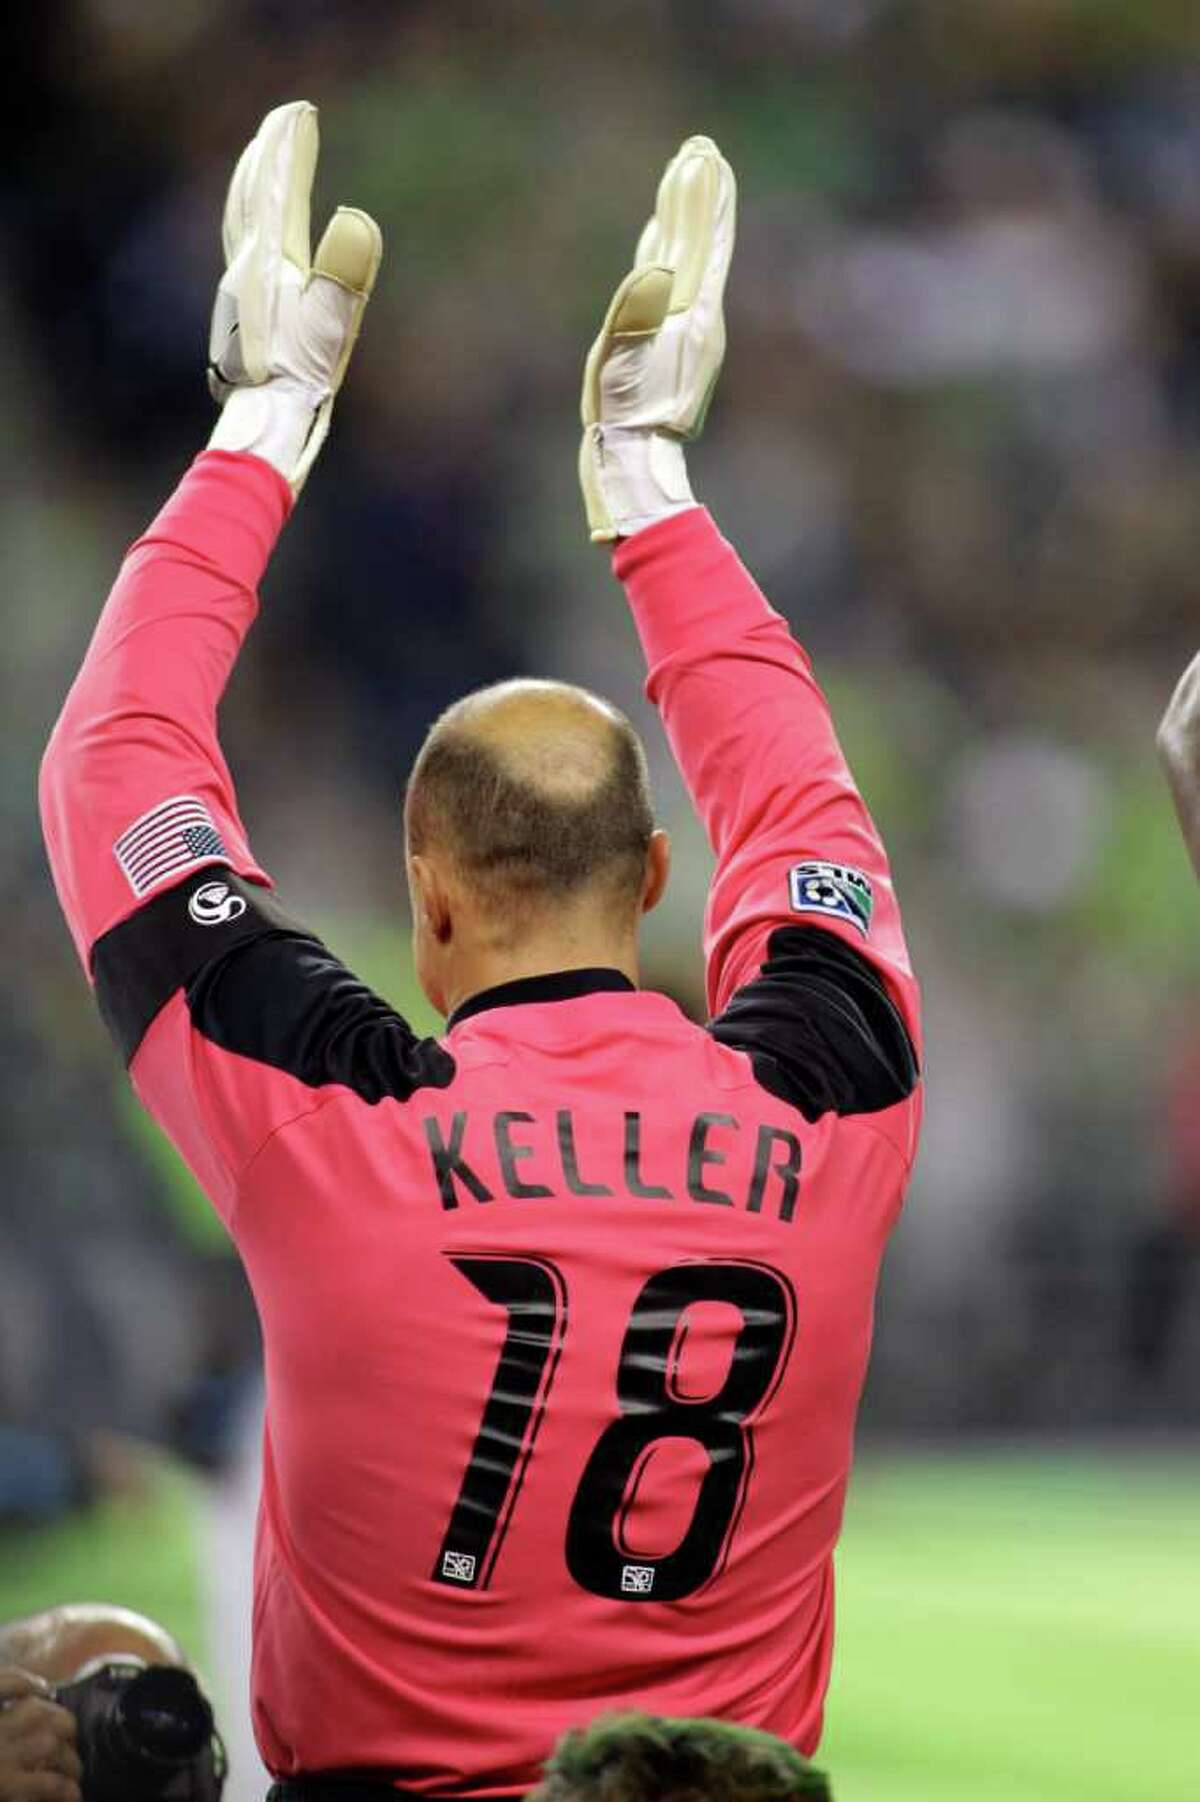 Seattle Sounders FC goalkeeper Kasey Keller applauds the crowd as he stands with his team prior to a MLS soccer match against the San Jose Earthquakes, Saturday, Oct. 15, 2011, in Seattle. The game is Keller's final regular season home game before retirement.